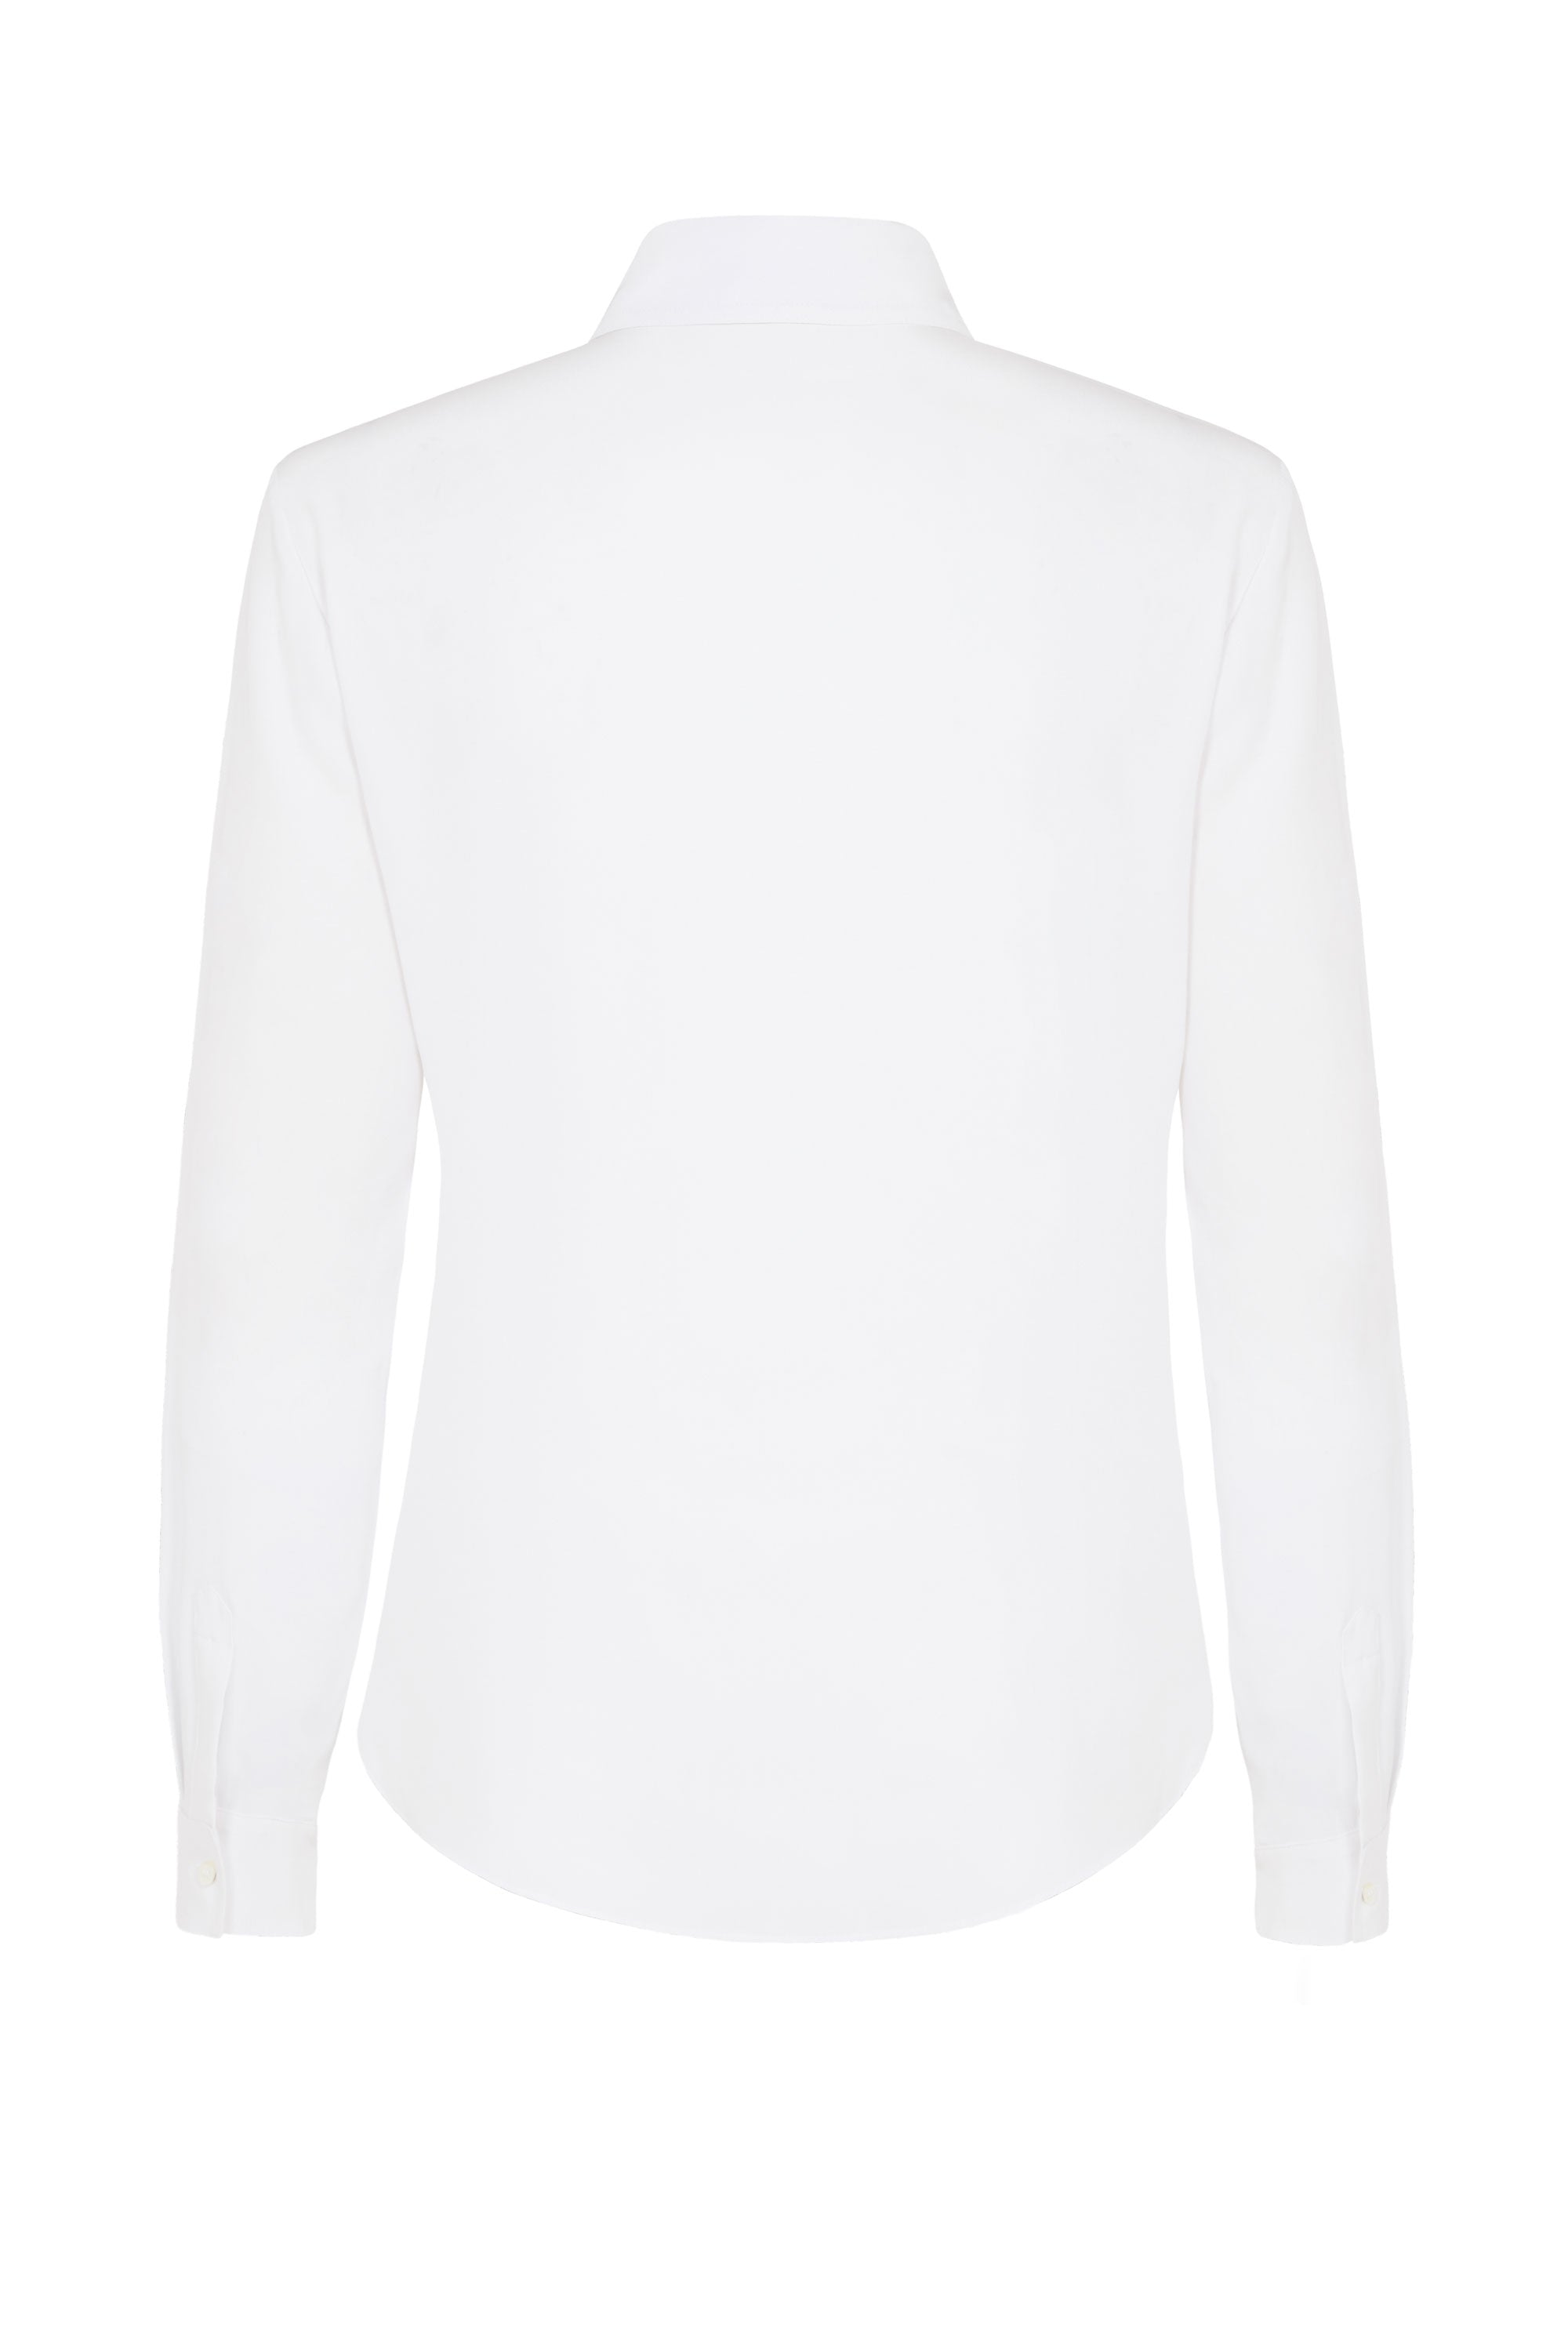 The New Serena Fitted Shirt - White Matte Silk